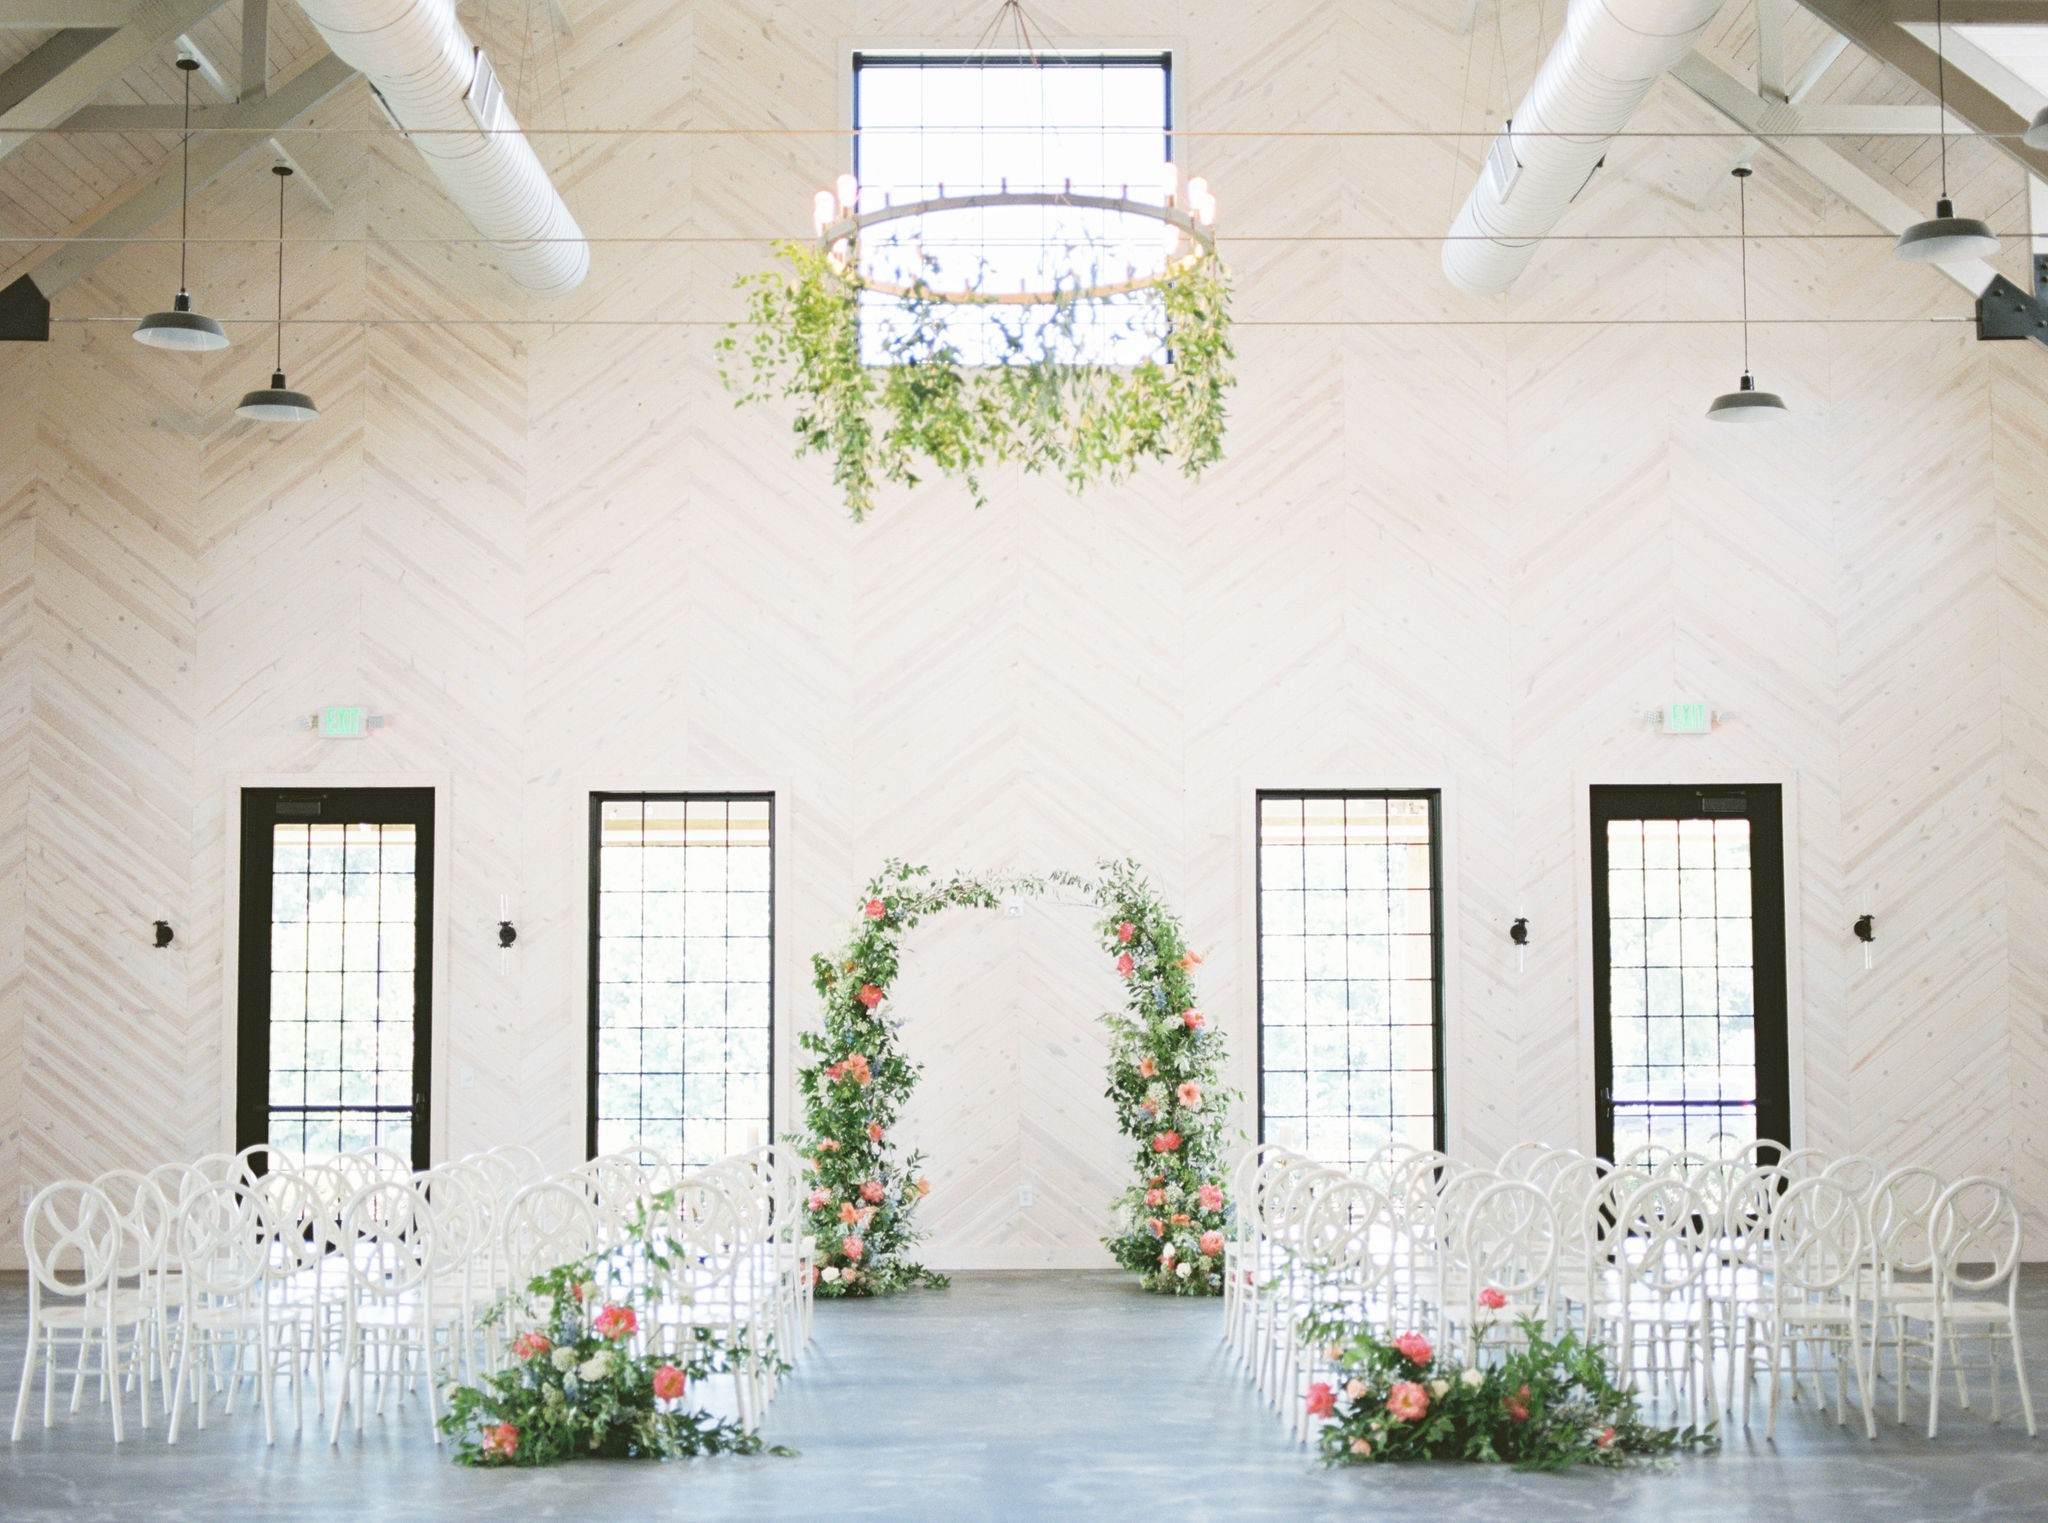 The Average Wedding Cost In Nc Versus The Average Cost Of A Pinterest Wedding Eliana Nunes Events